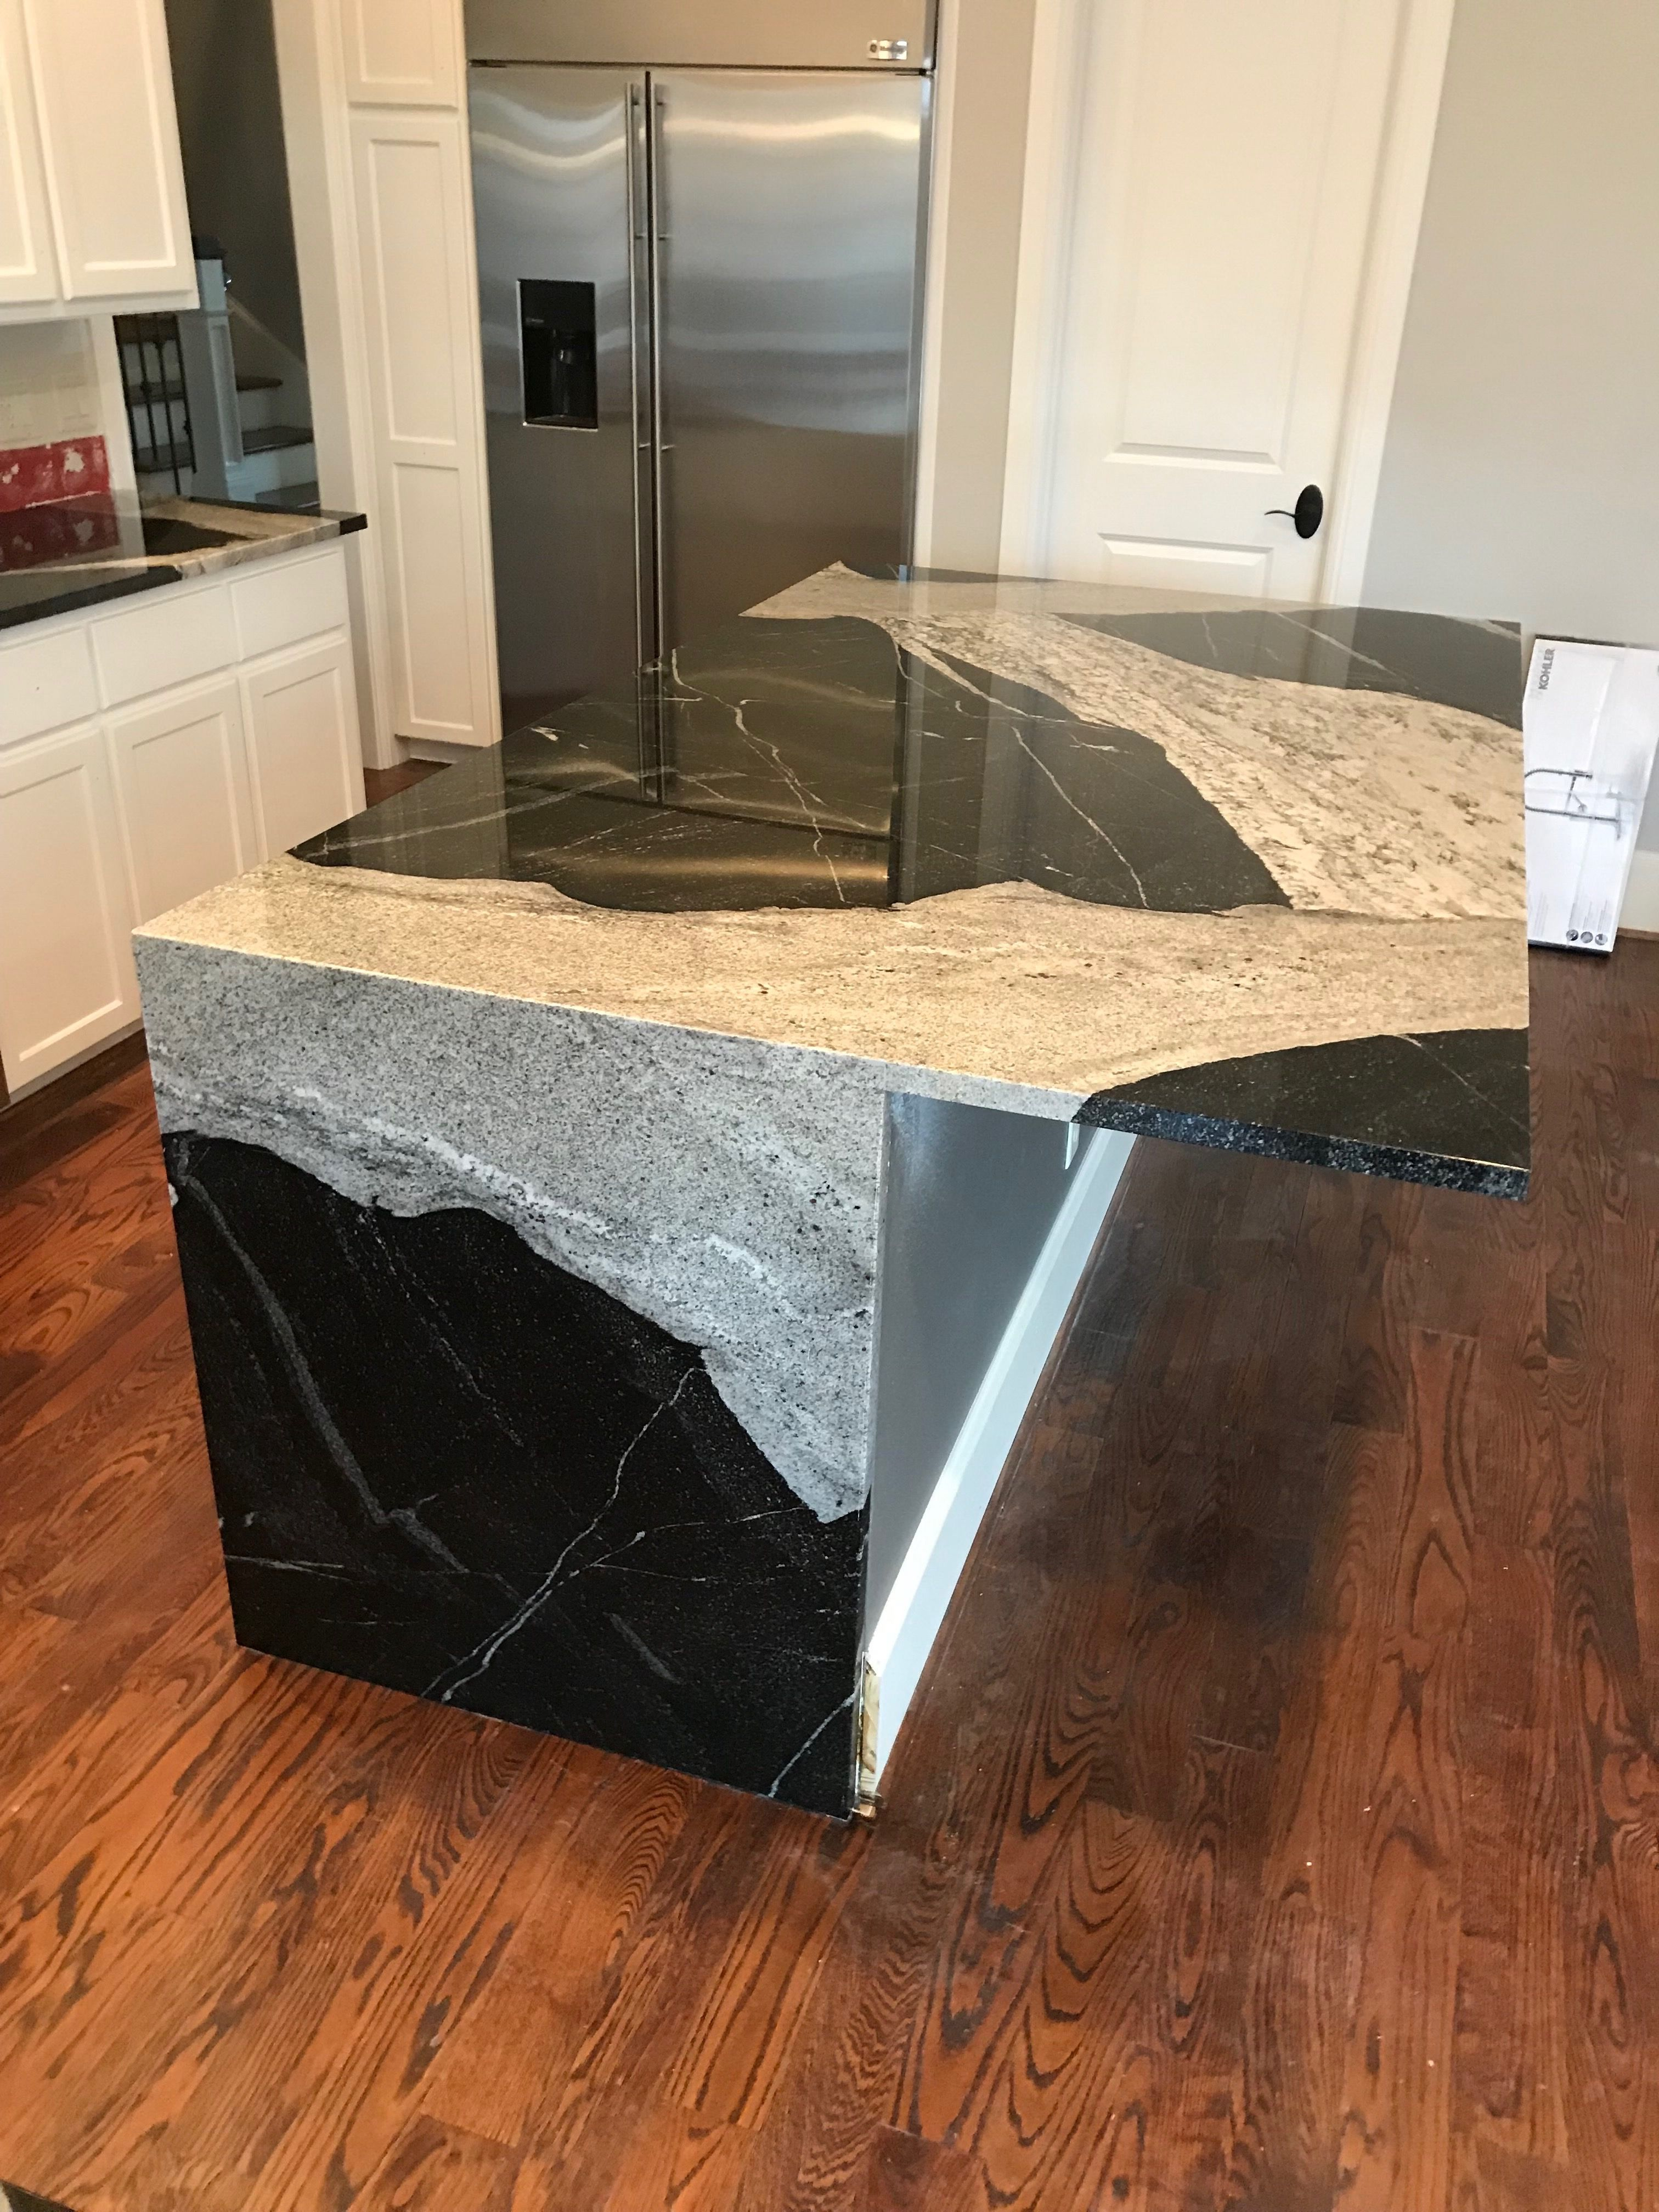 Maori Granite By Allure Natural Stone In 2020 Granite Countertops Kitchen Granite Natural Stones